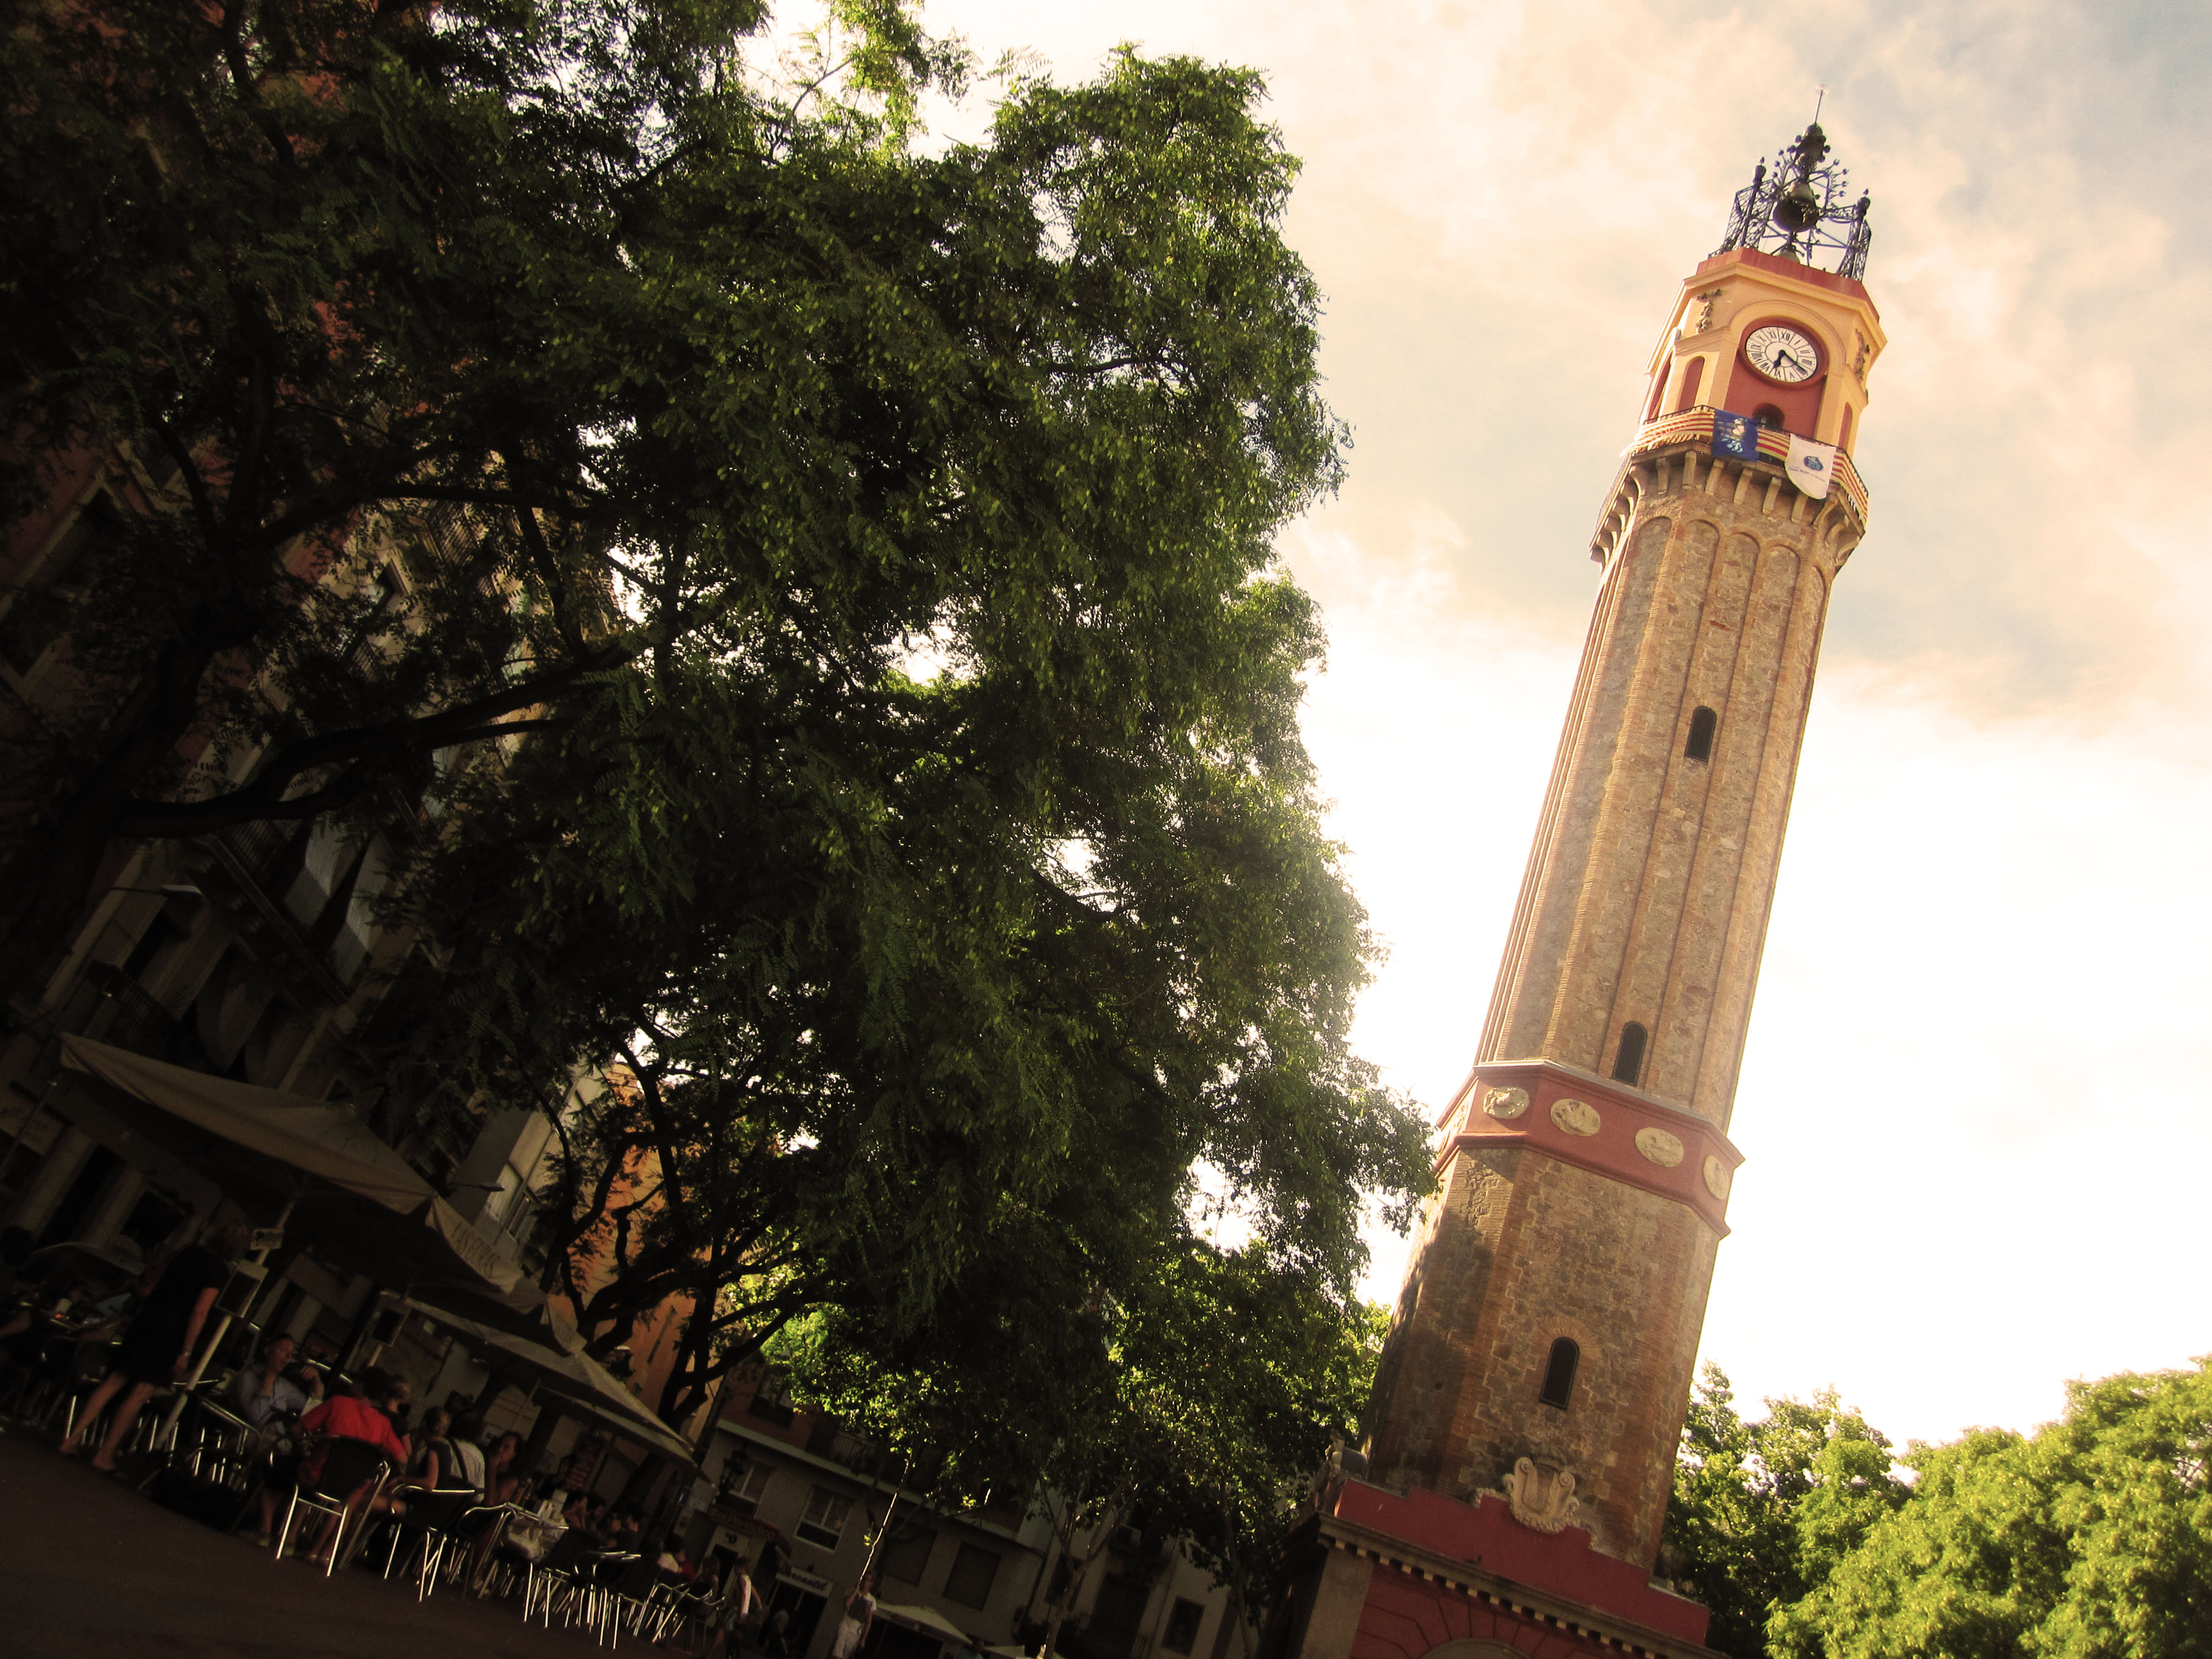 Plaça de Rius i Taulet - The bell tower is a symbol for the independency of Grácia which is still in the residents' minds